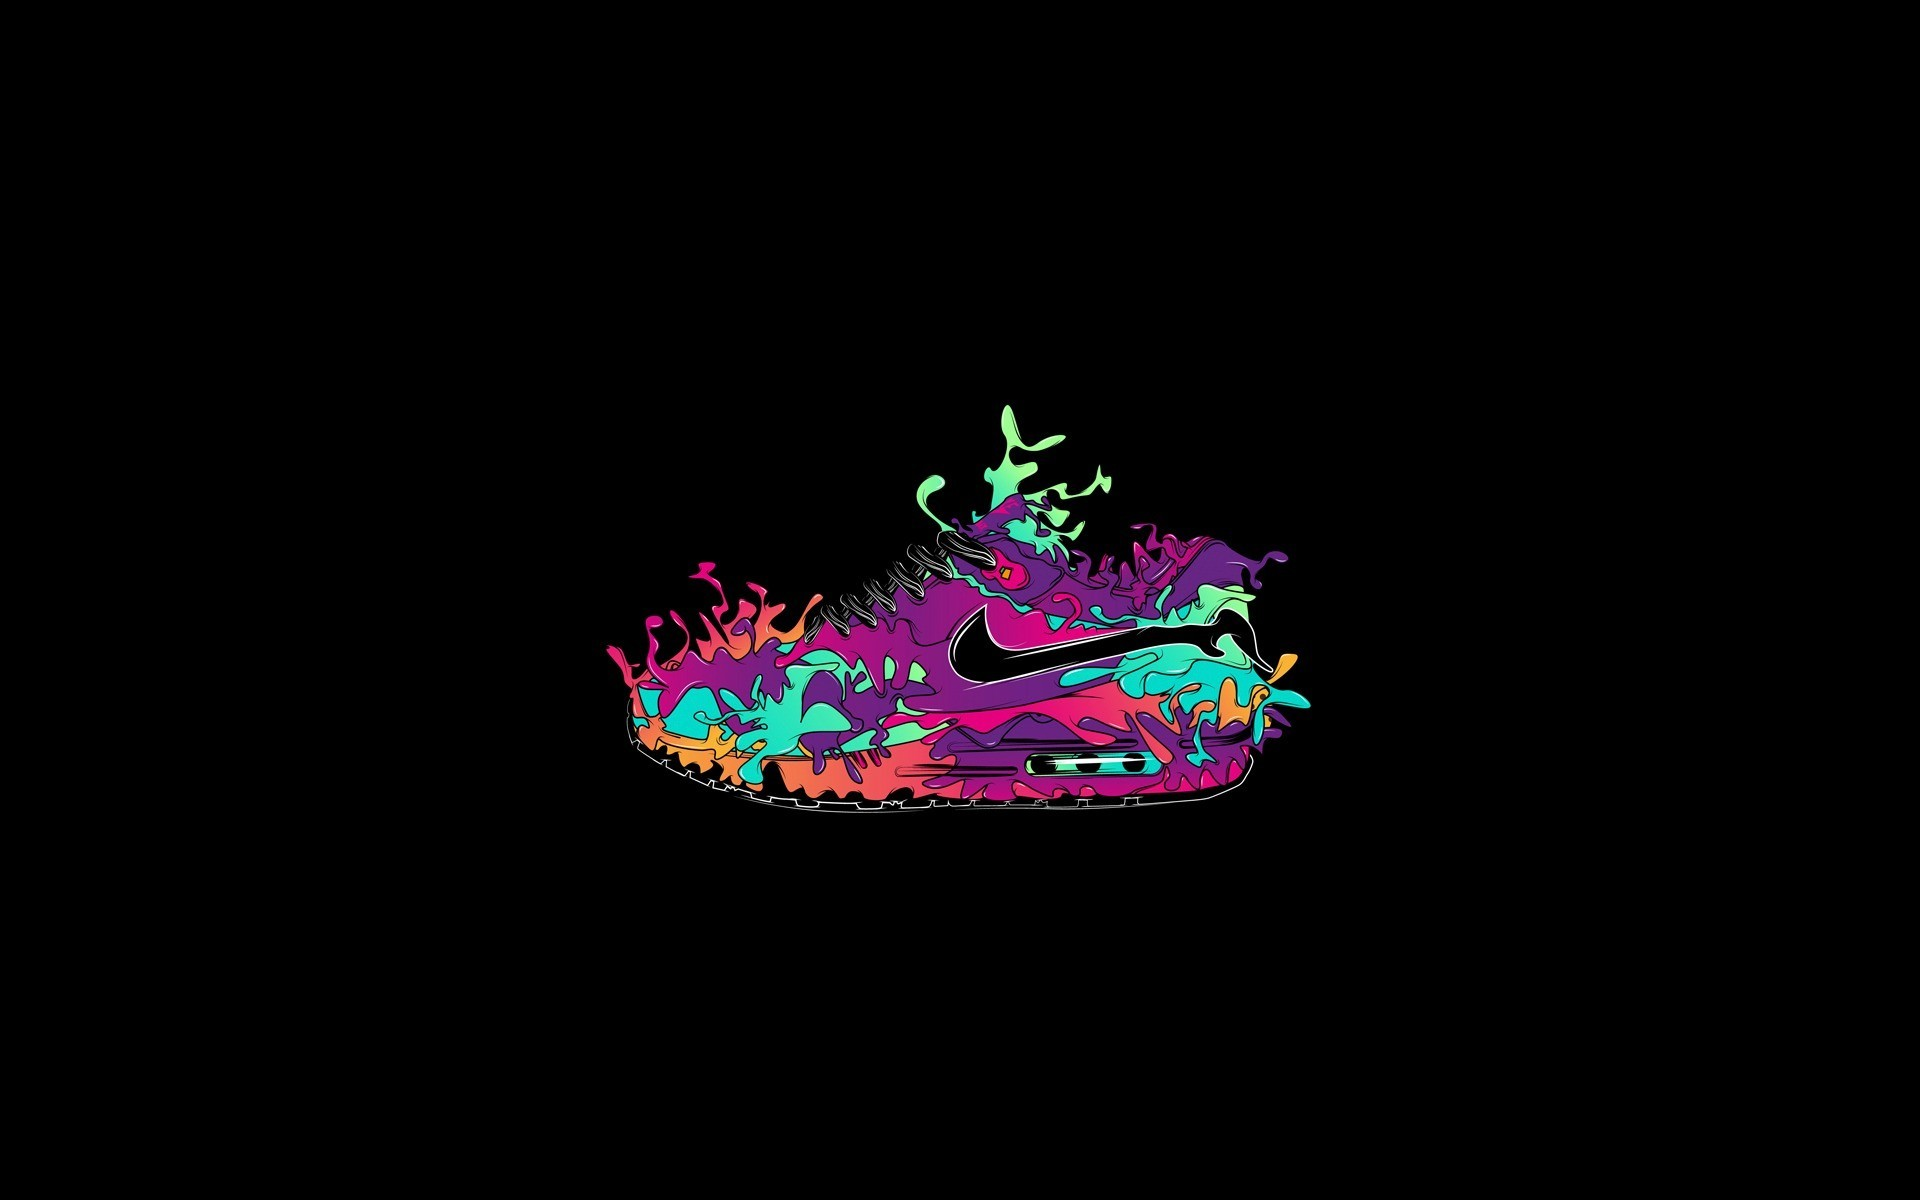 500 Wallpaper Android Nike  Terbaru